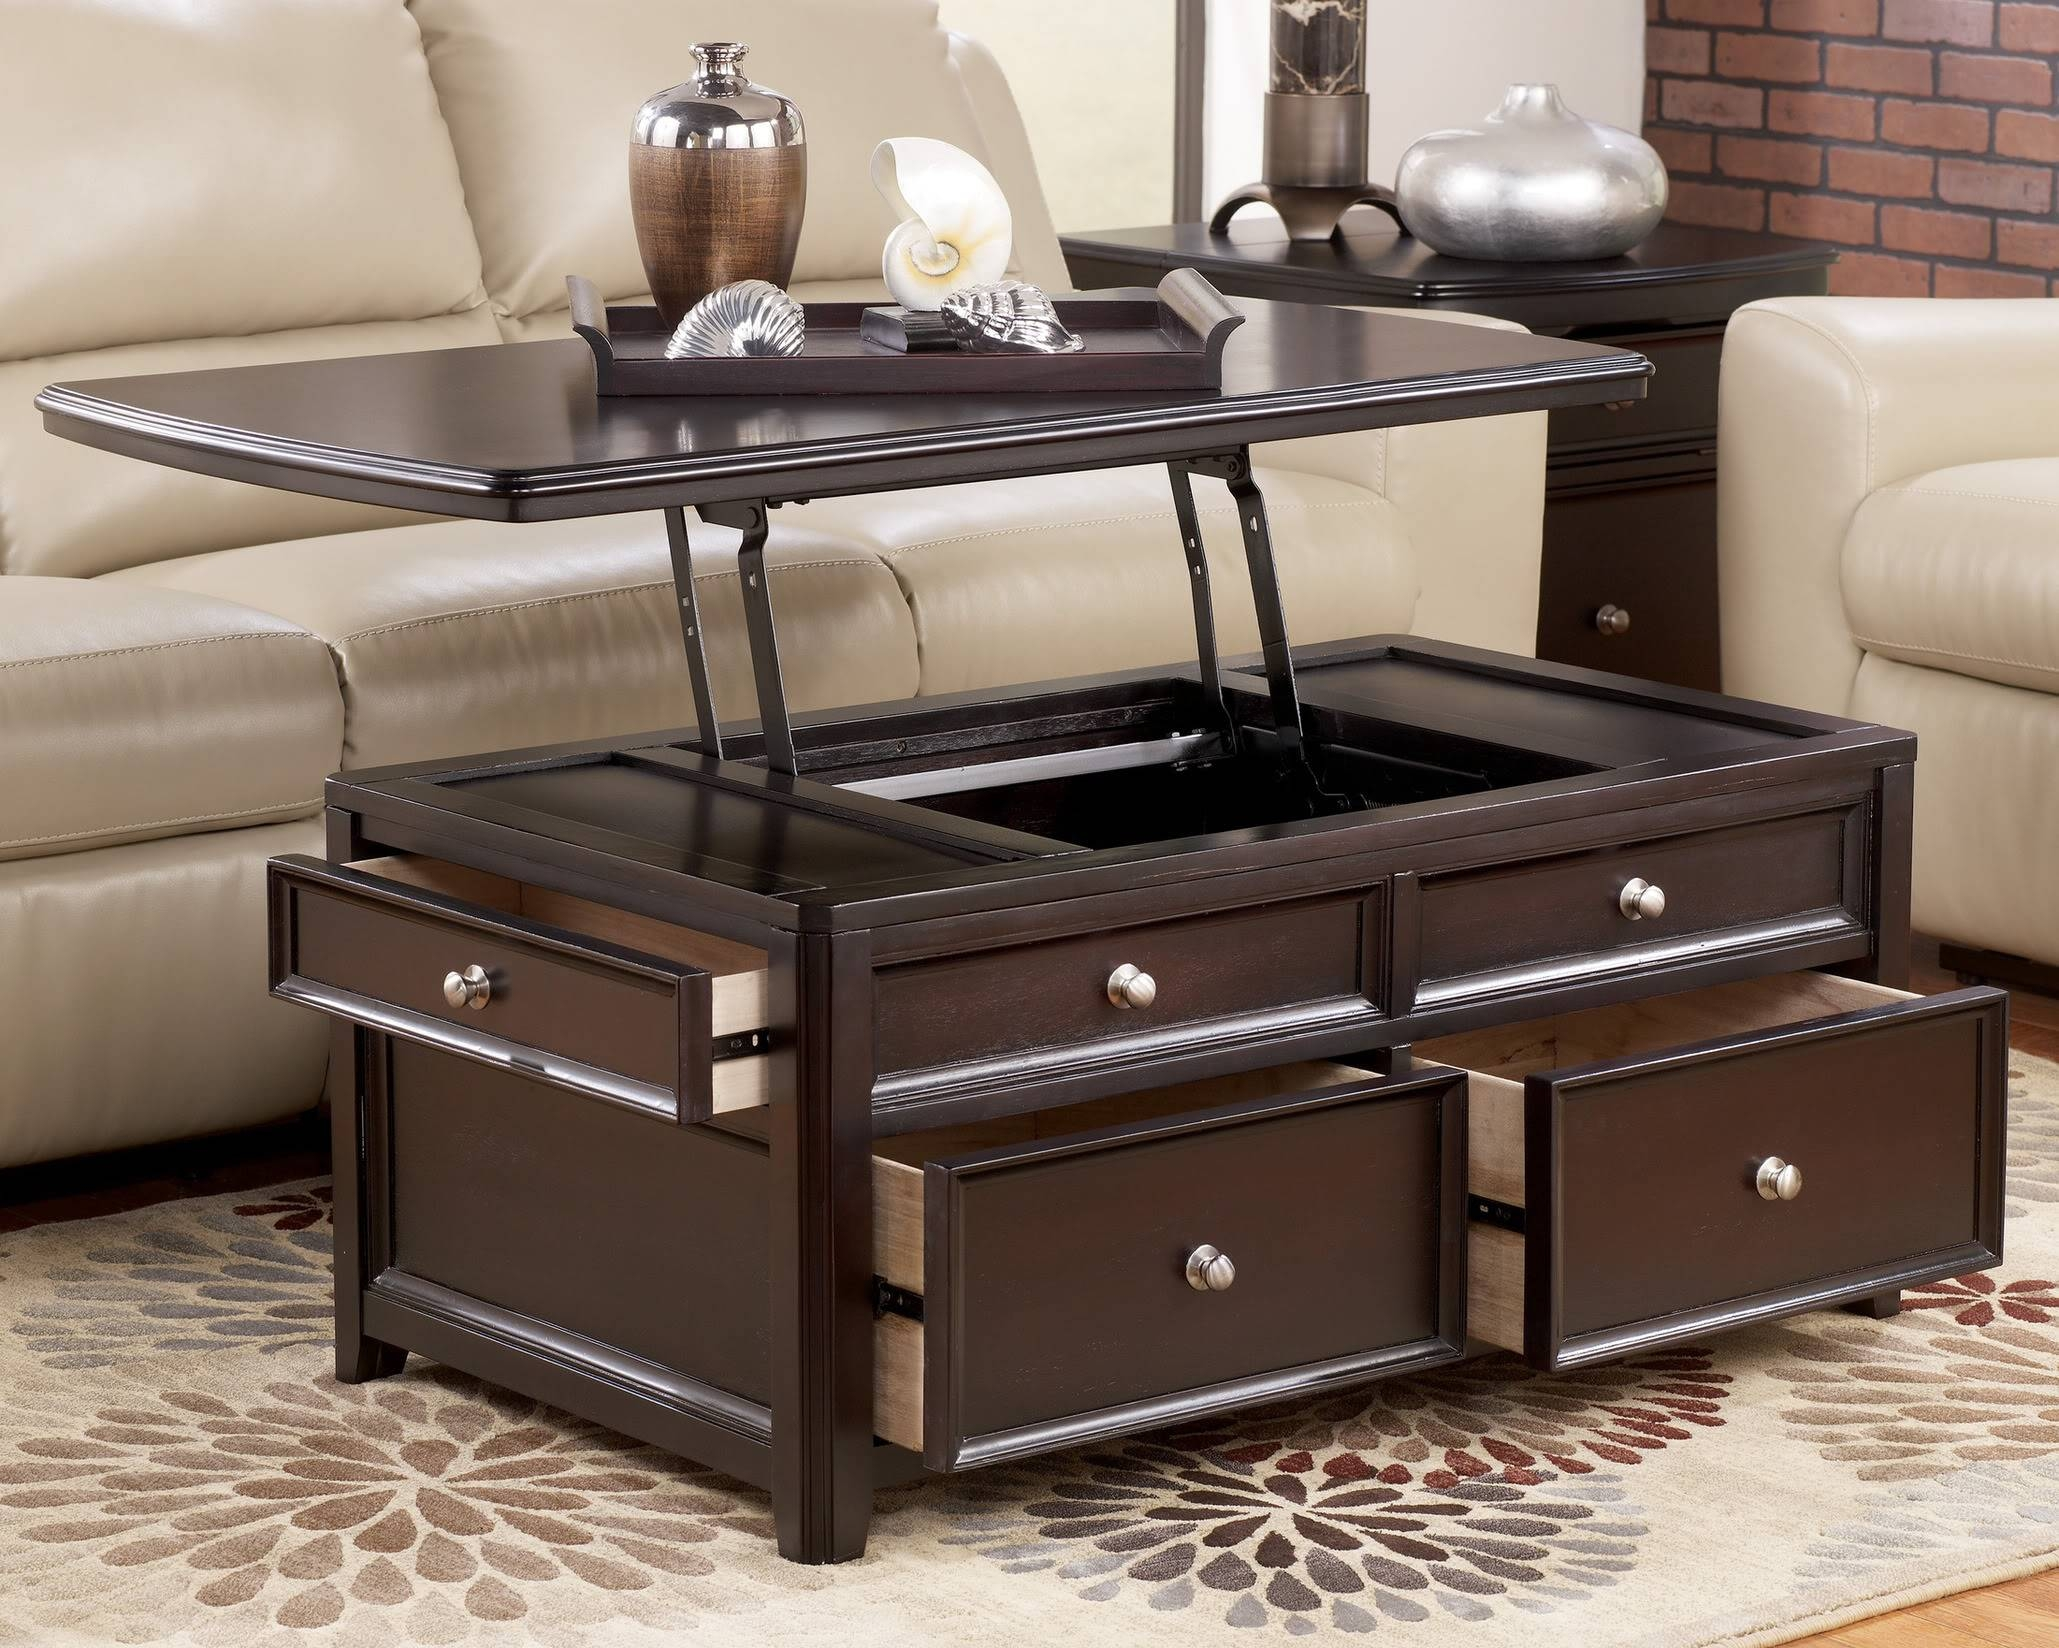 Sedona Lift Top Coffee Table In Java With 4 Storage Ottomans pertaining to Coffee Tables With Lift Top And Storage (Image 11 of 14)